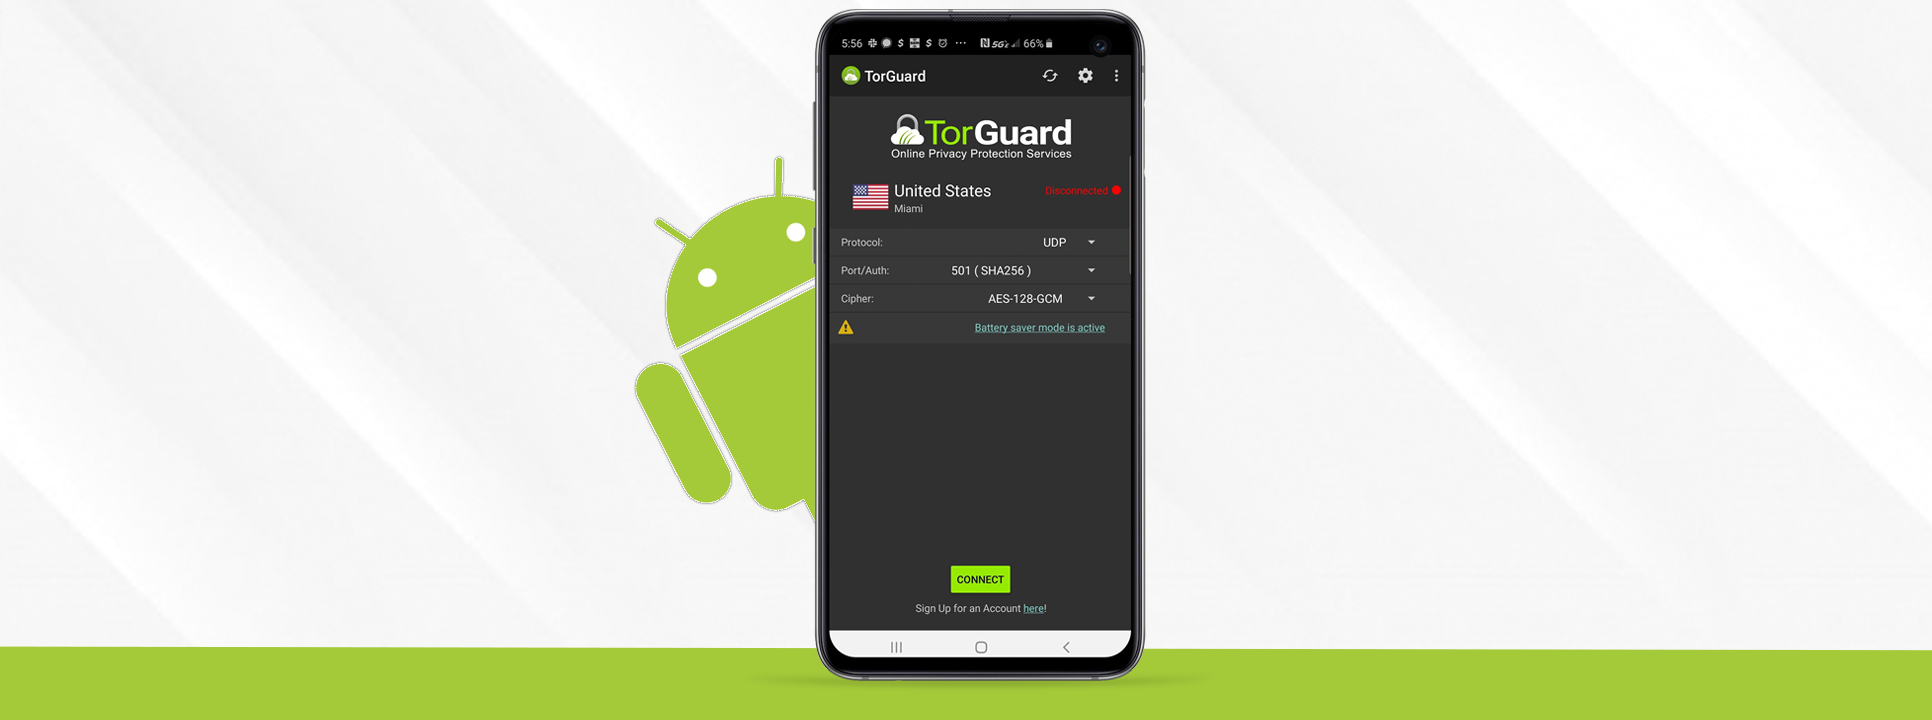 TorGuard for Android: Latest Updates and Improvements